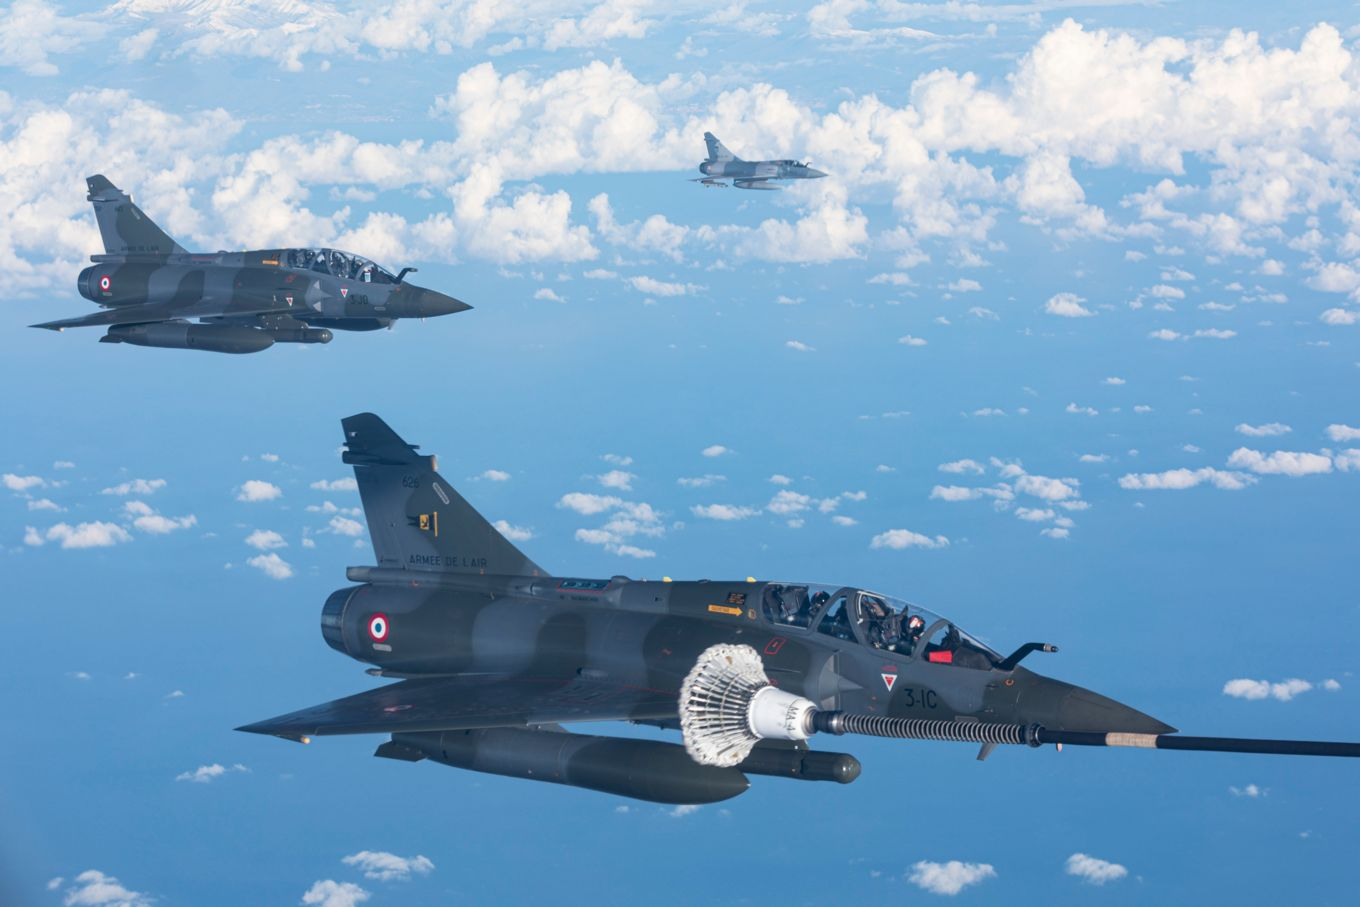 Image shows three French Mirage 2000 aircraft flying.